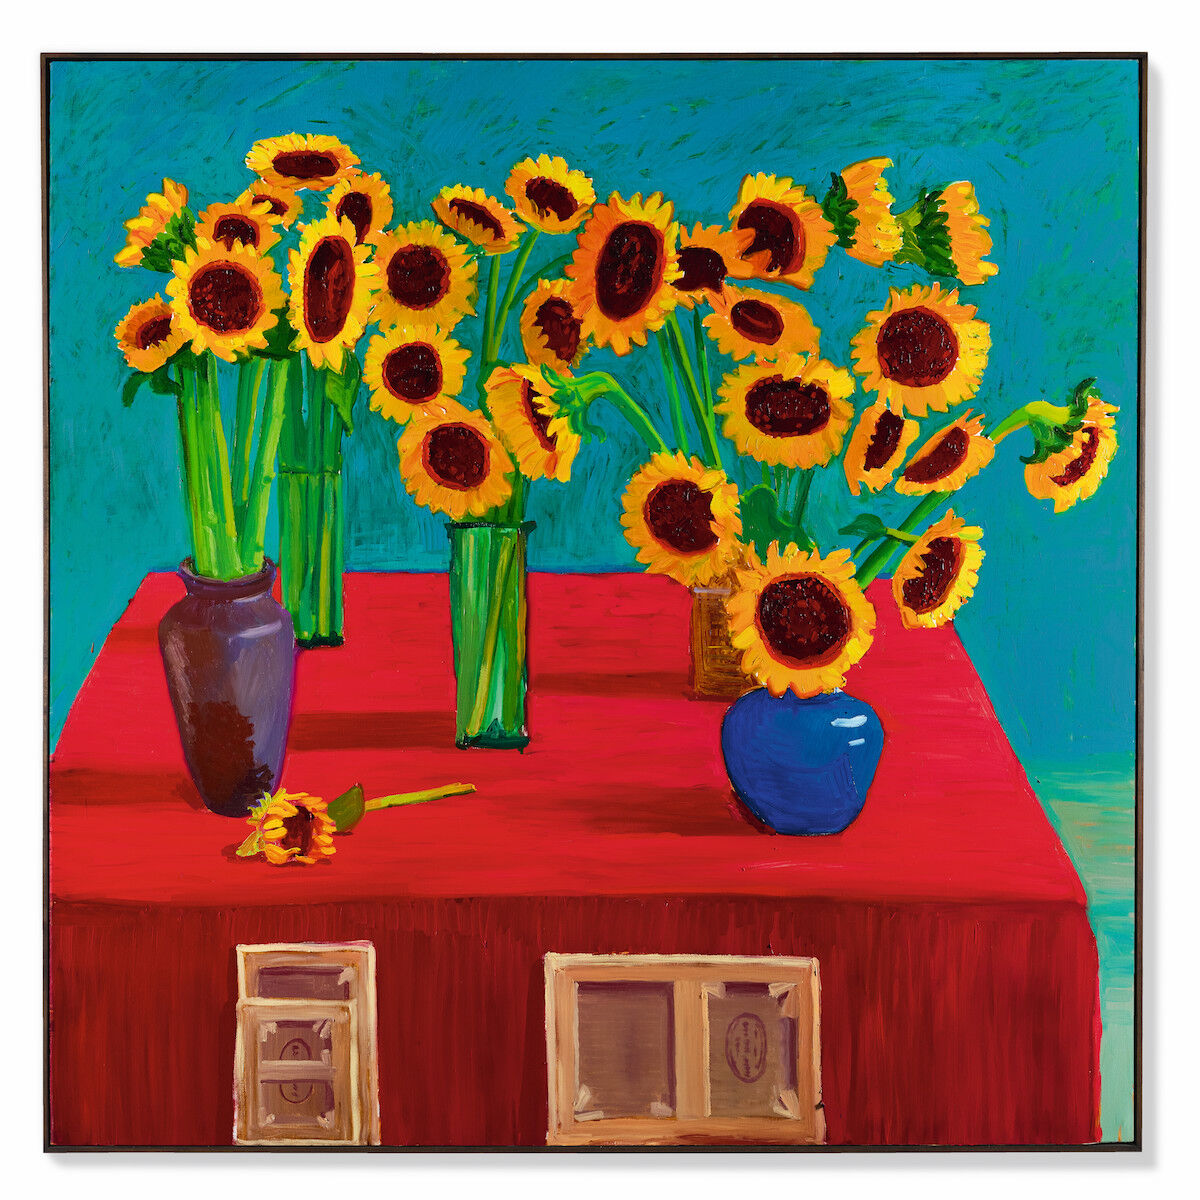 David Hockney, 30 Sunflowers, 1996. Est. in excess of HK$80 million (US$10.3 million). Courtesy Sotheby's.